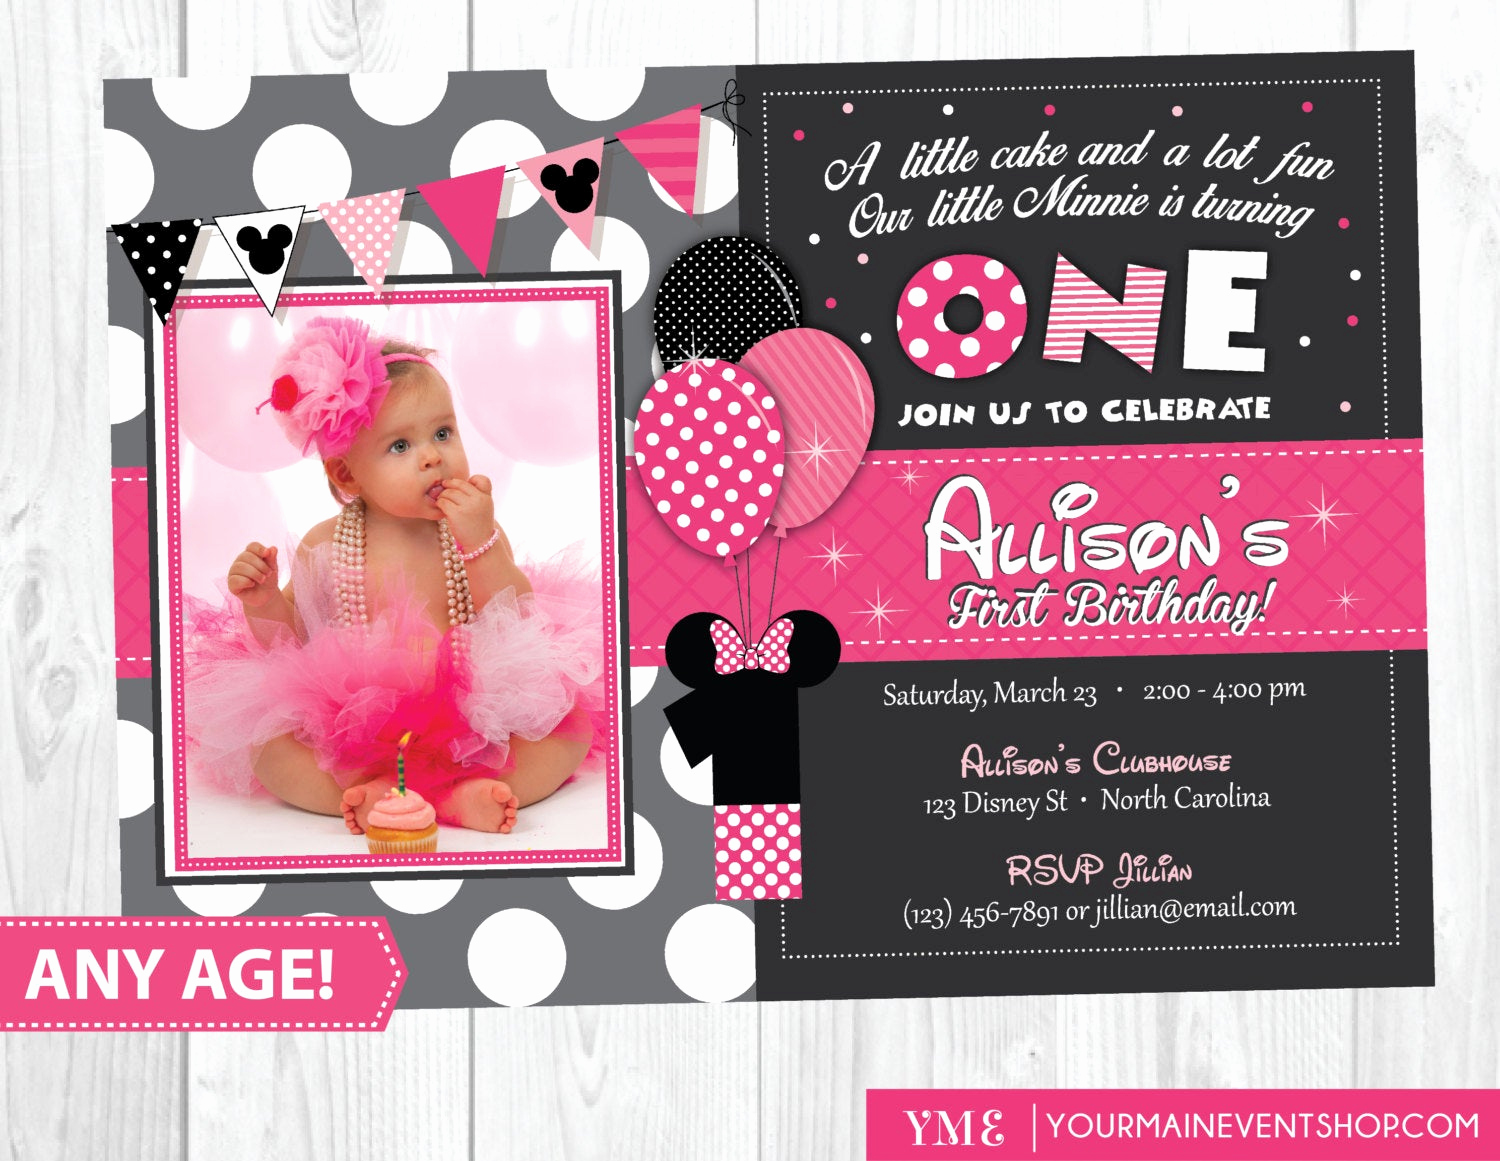 Minnie Mouse Birthday Invitations Best Of Minnie Mouse Birthday Invitation Minnie Mouse Inspired